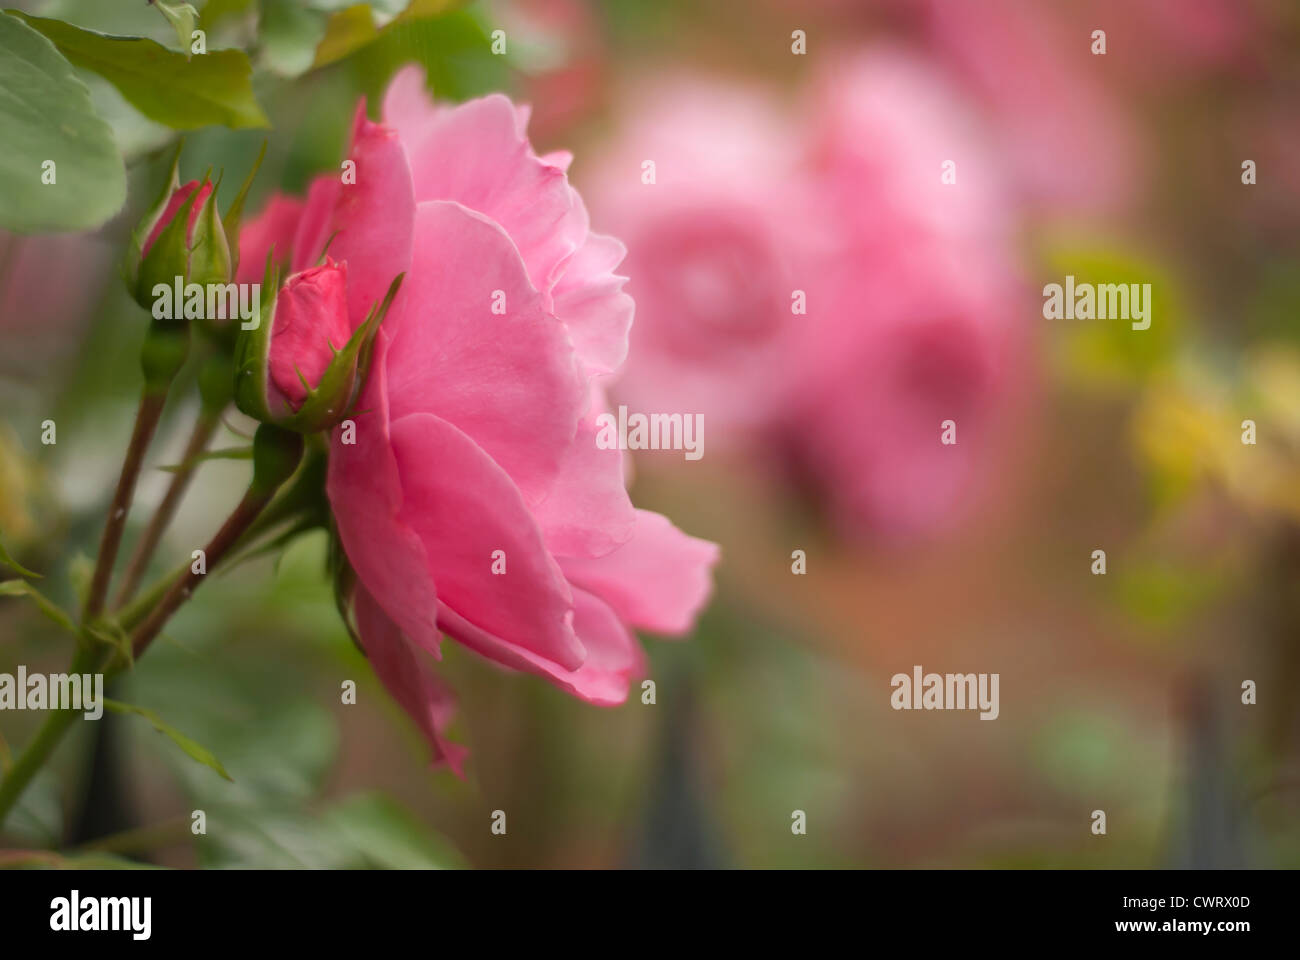 A beautiful pink rose with rosebuds in the foreground,left,, with mysty pink roses in the background. - Stock Image